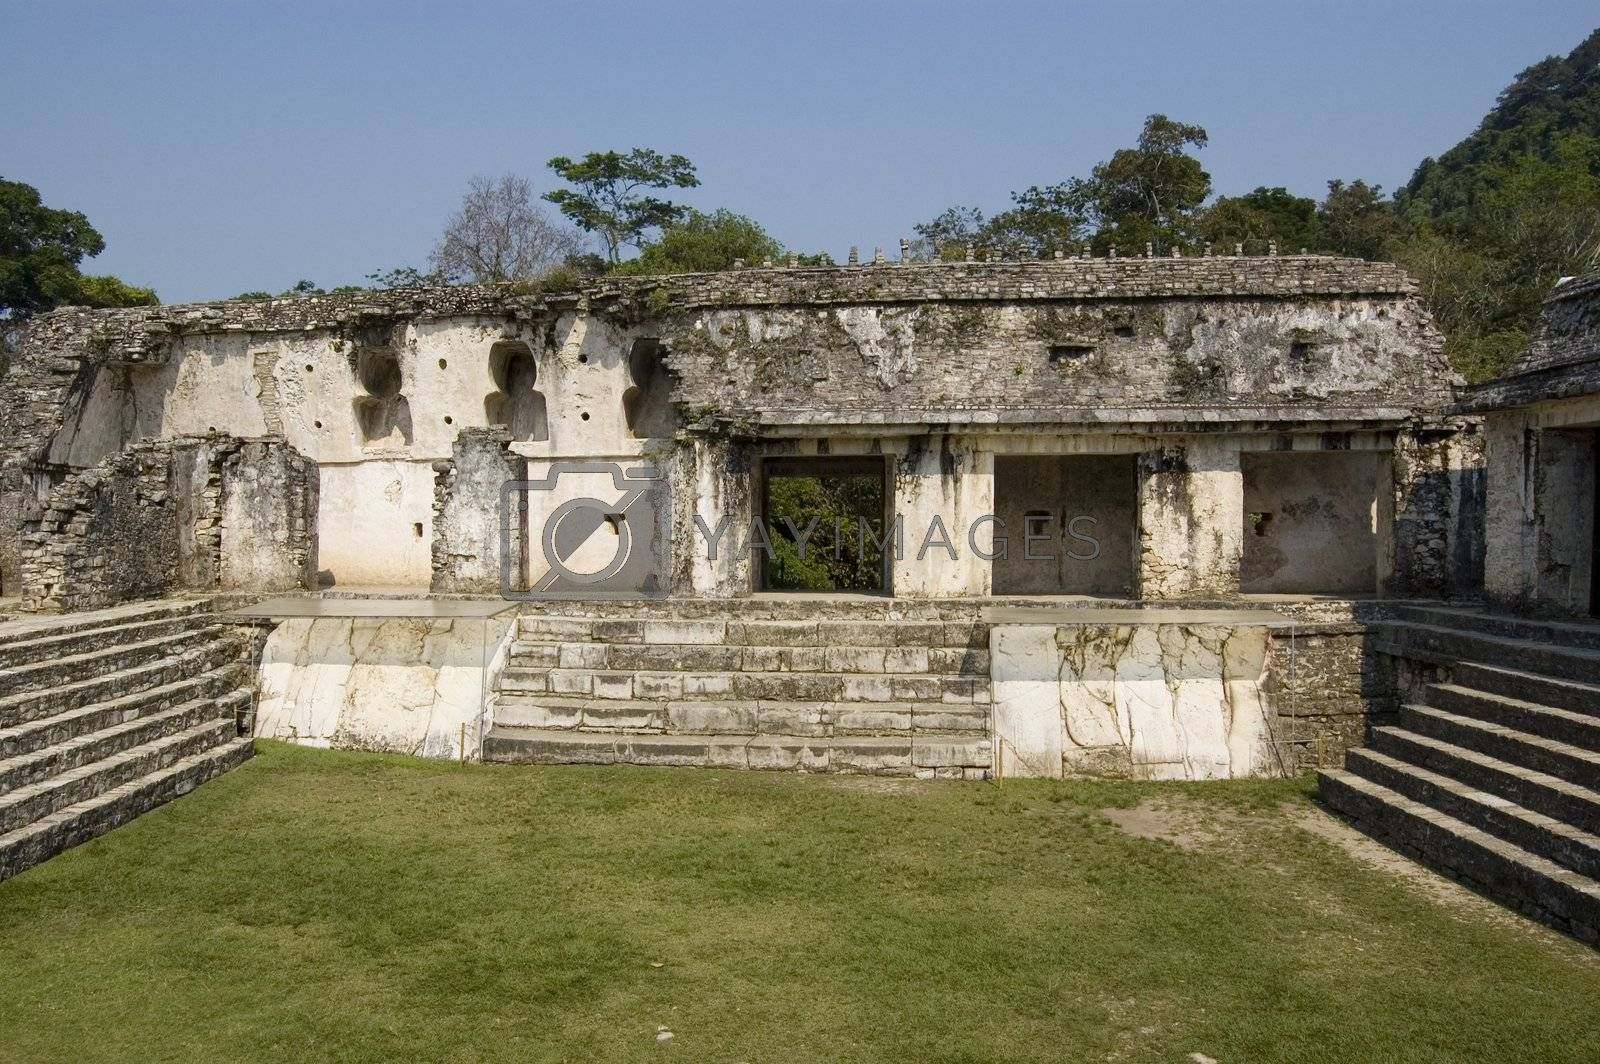 King Pakal castle detail showing the courtyard and main entrance at Palenque ruins